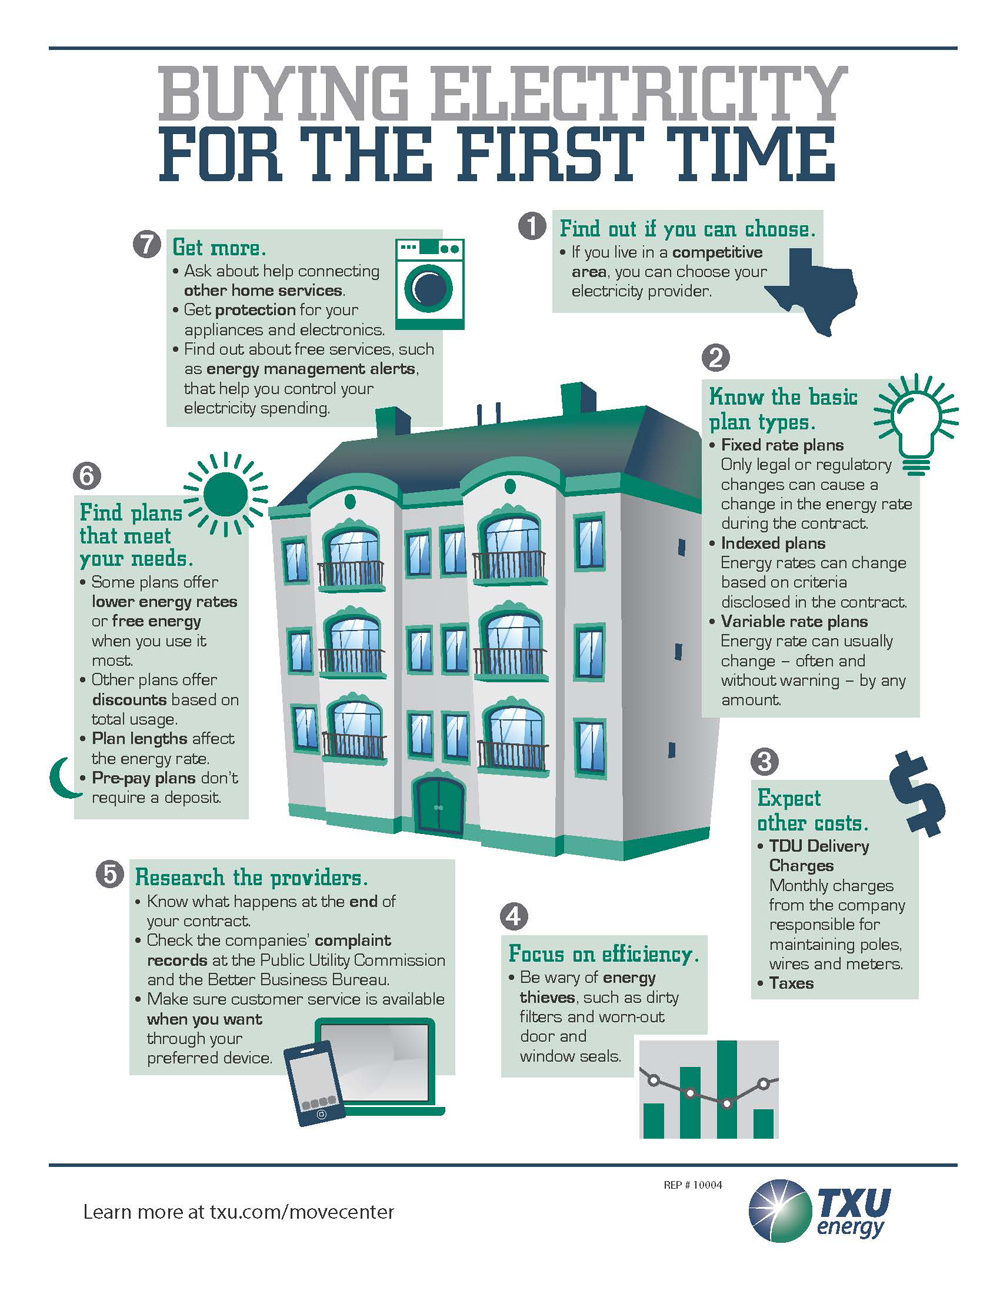 TXU Energy helps renters understand the state's competitive retail electricity market so they can make the best choices. (Graphic: Business Wire)